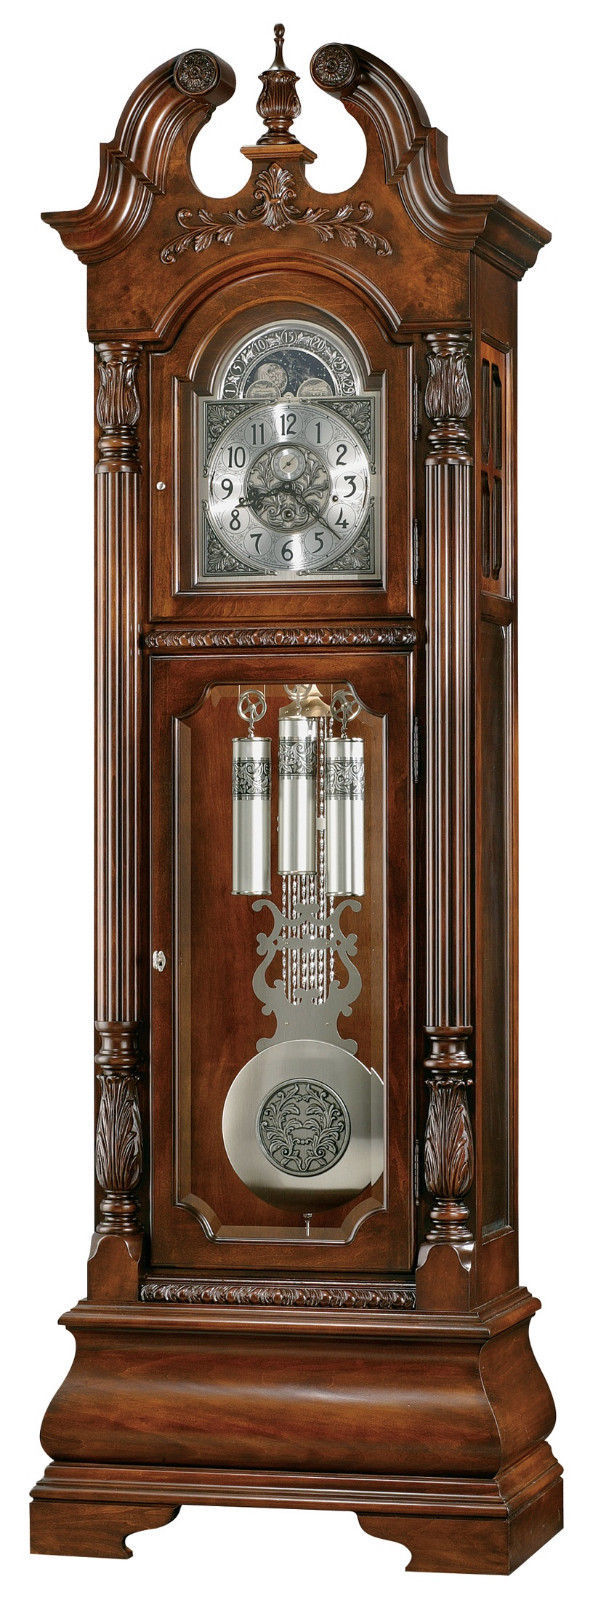 Primary image for Howard Miller 611-132 (611132) Stratford Grandfather Floor Clock -Hampton Cherry